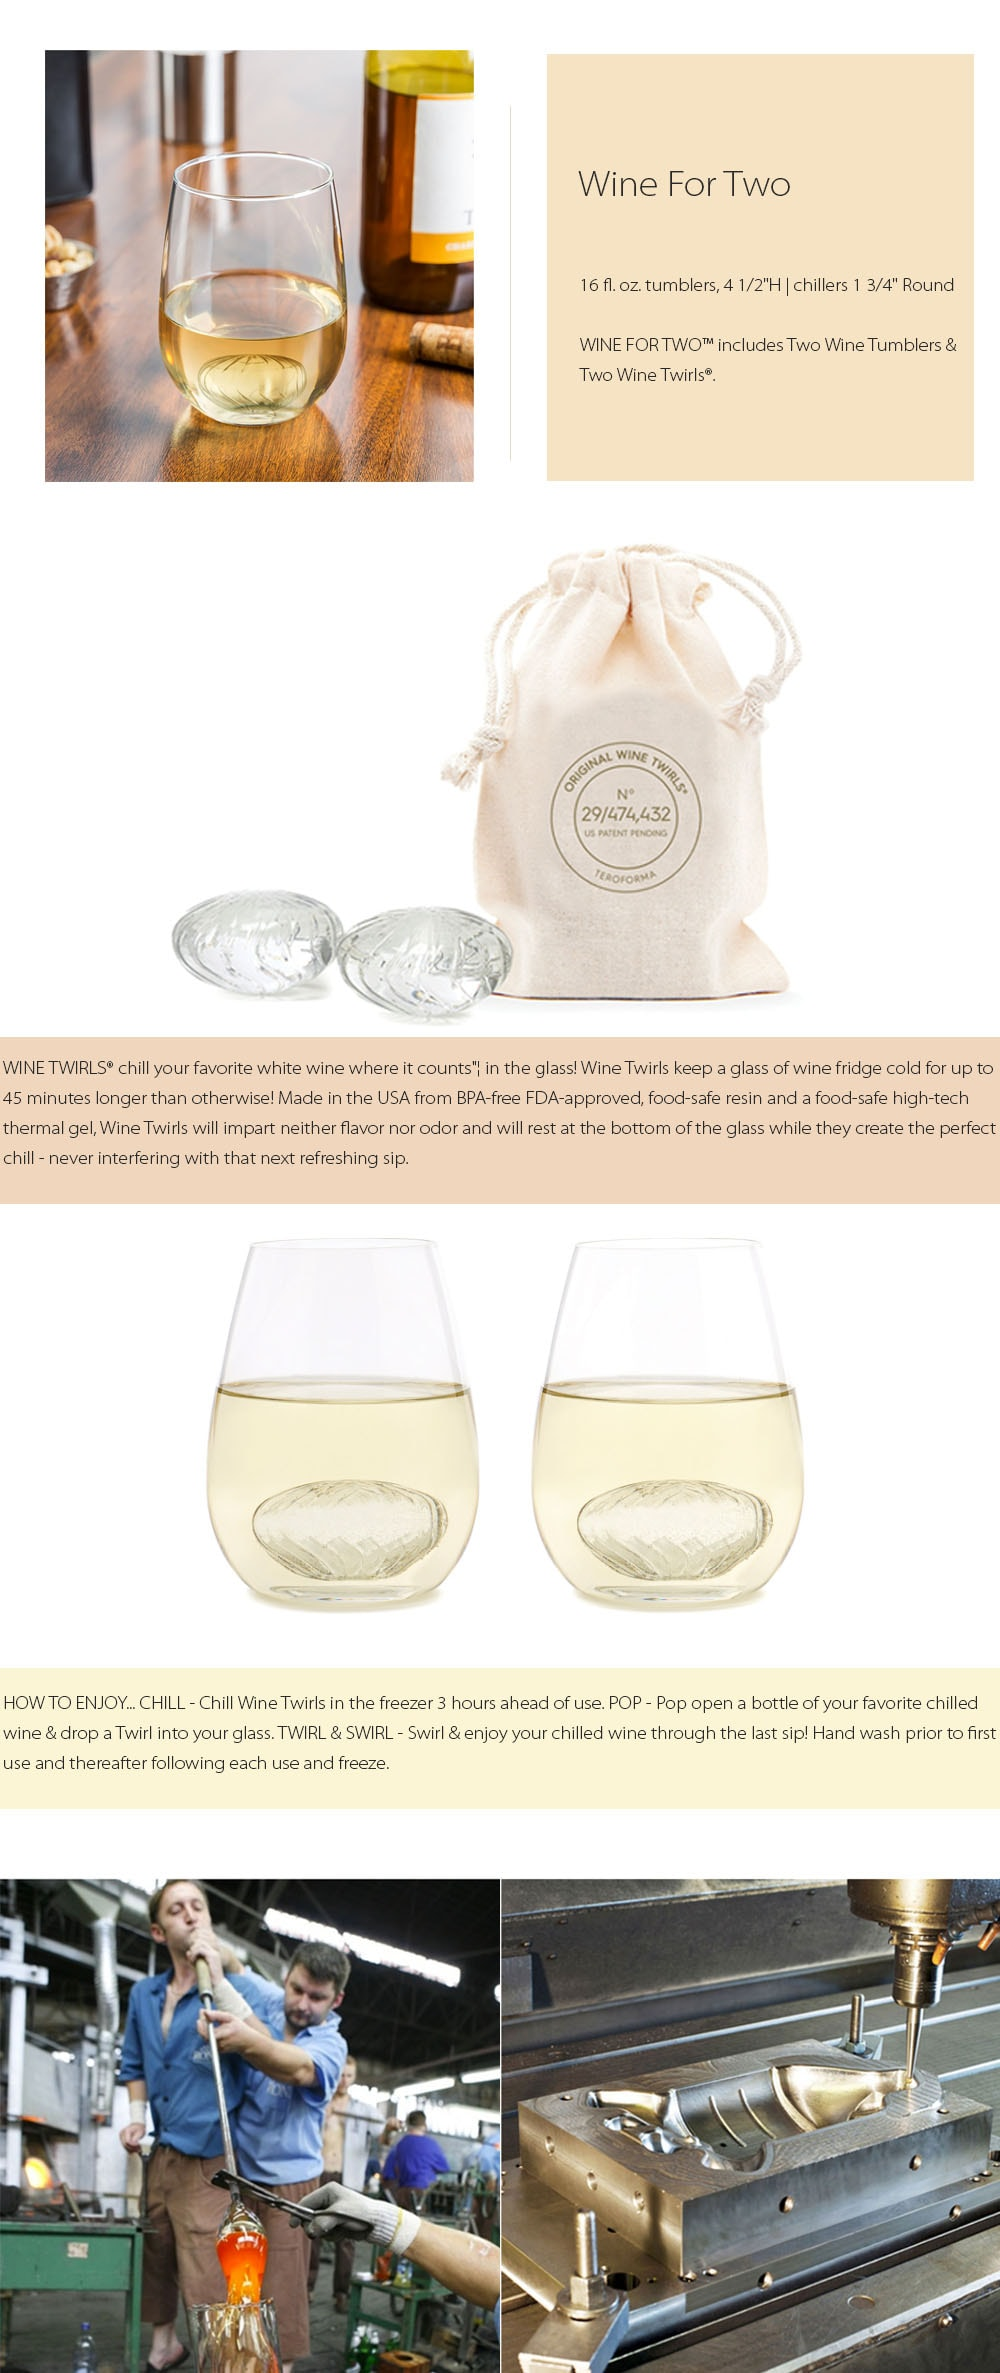 Wine Of Two (Set of 2) Chill Your Favorite White Wine